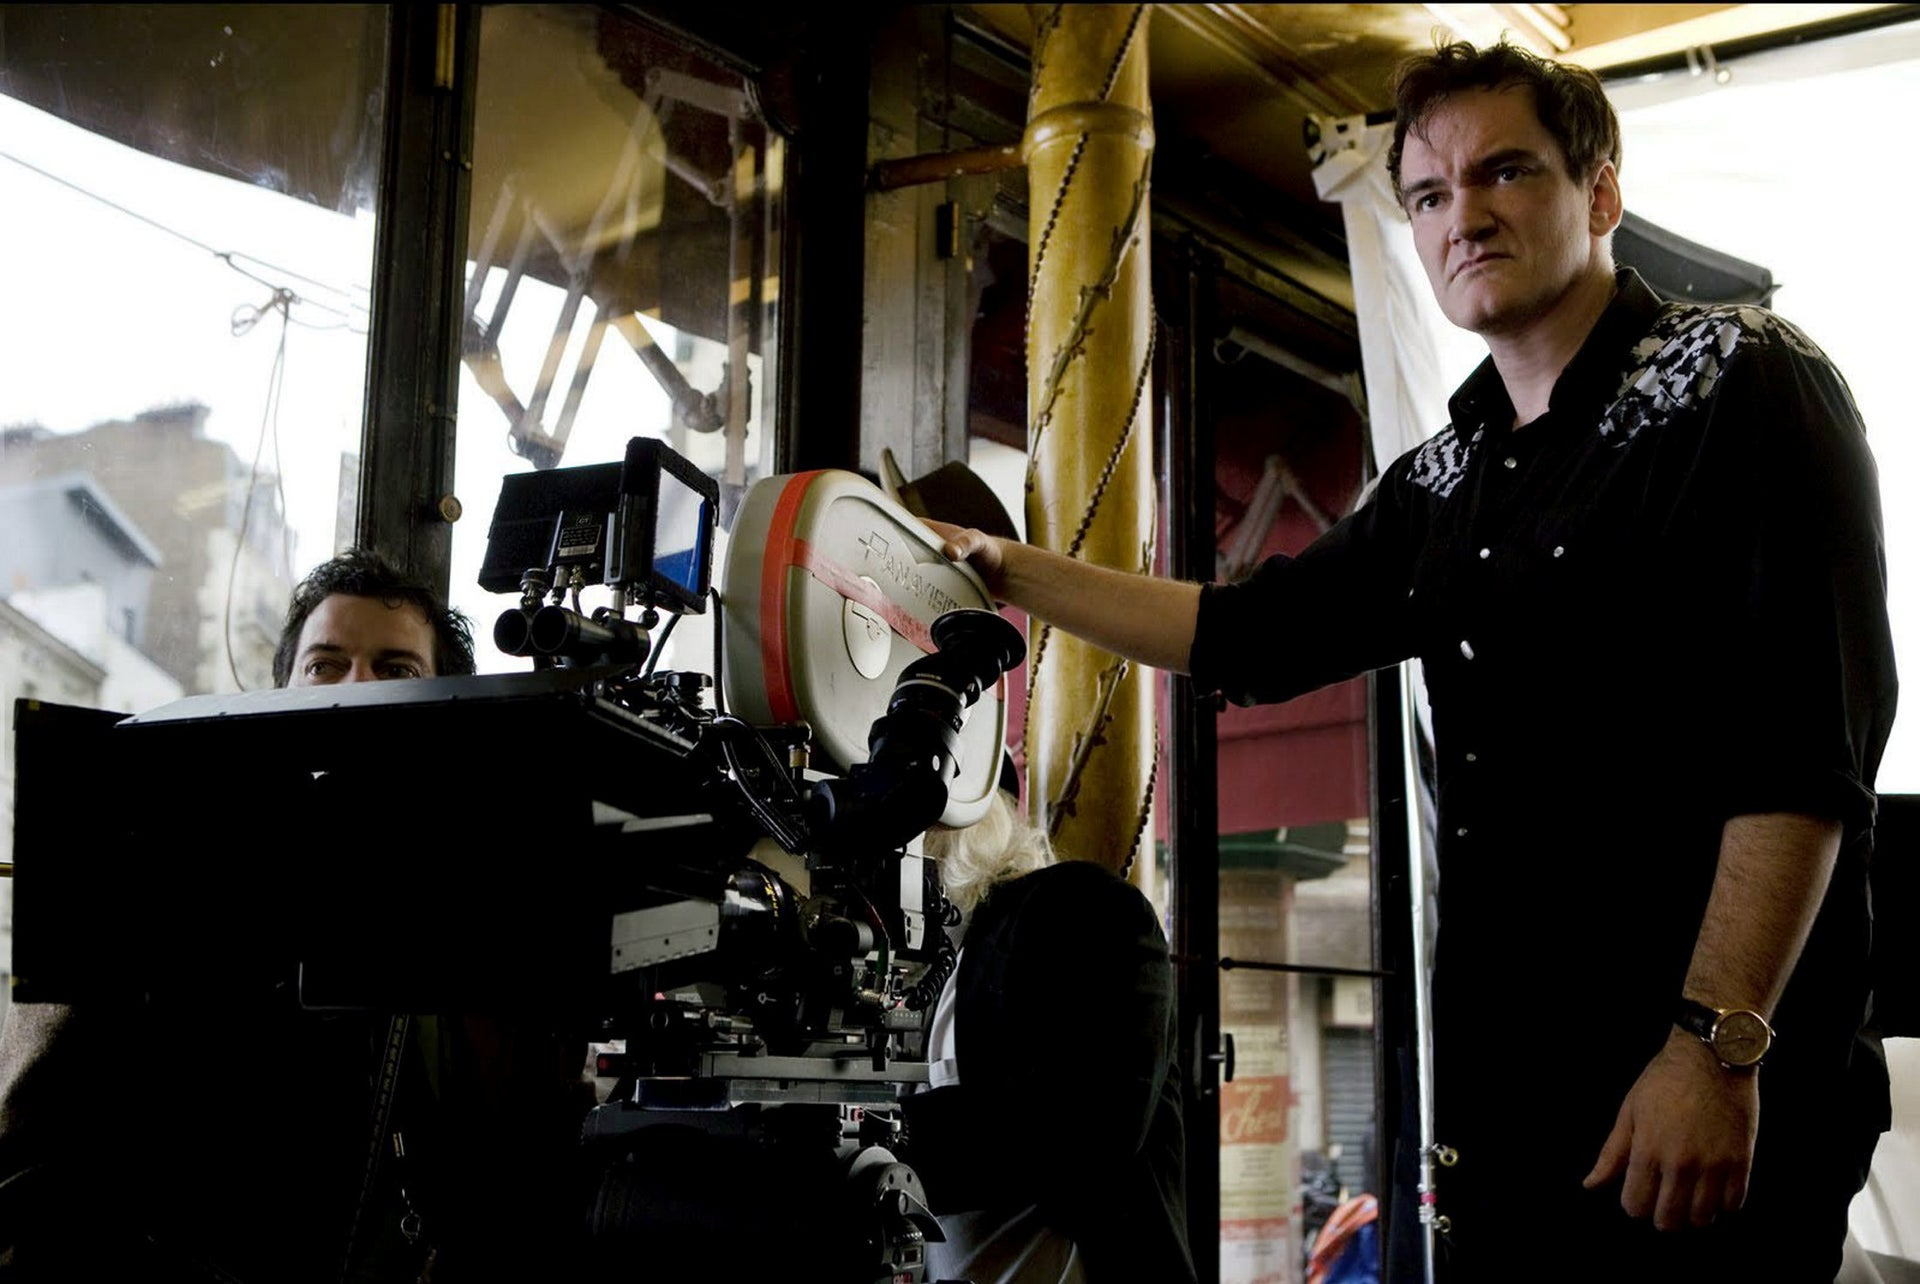 Quentin Tarantino during the filming of 'Inglourious Basterds.'